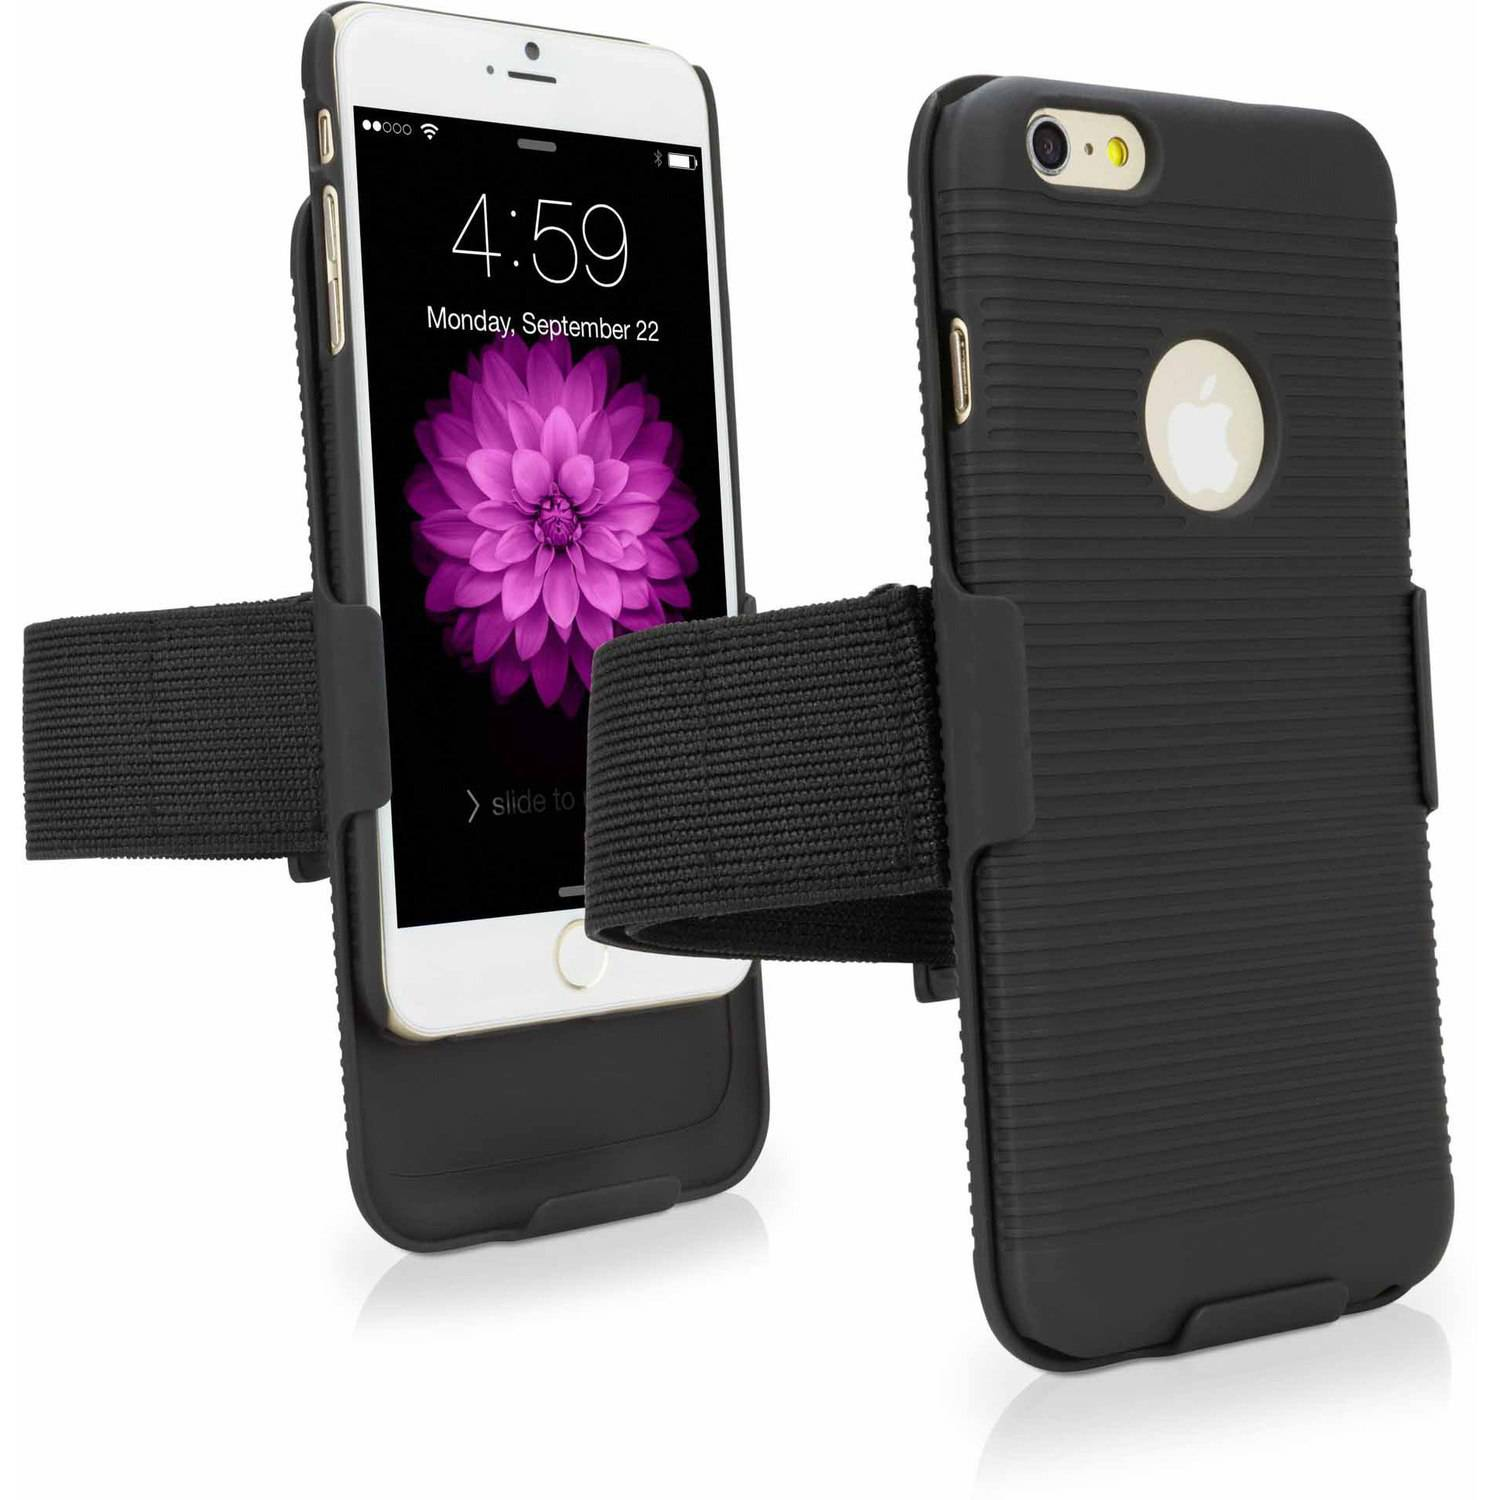 BoxWave Armband Holster for Apple iPhone 6 Plus/6s Plus